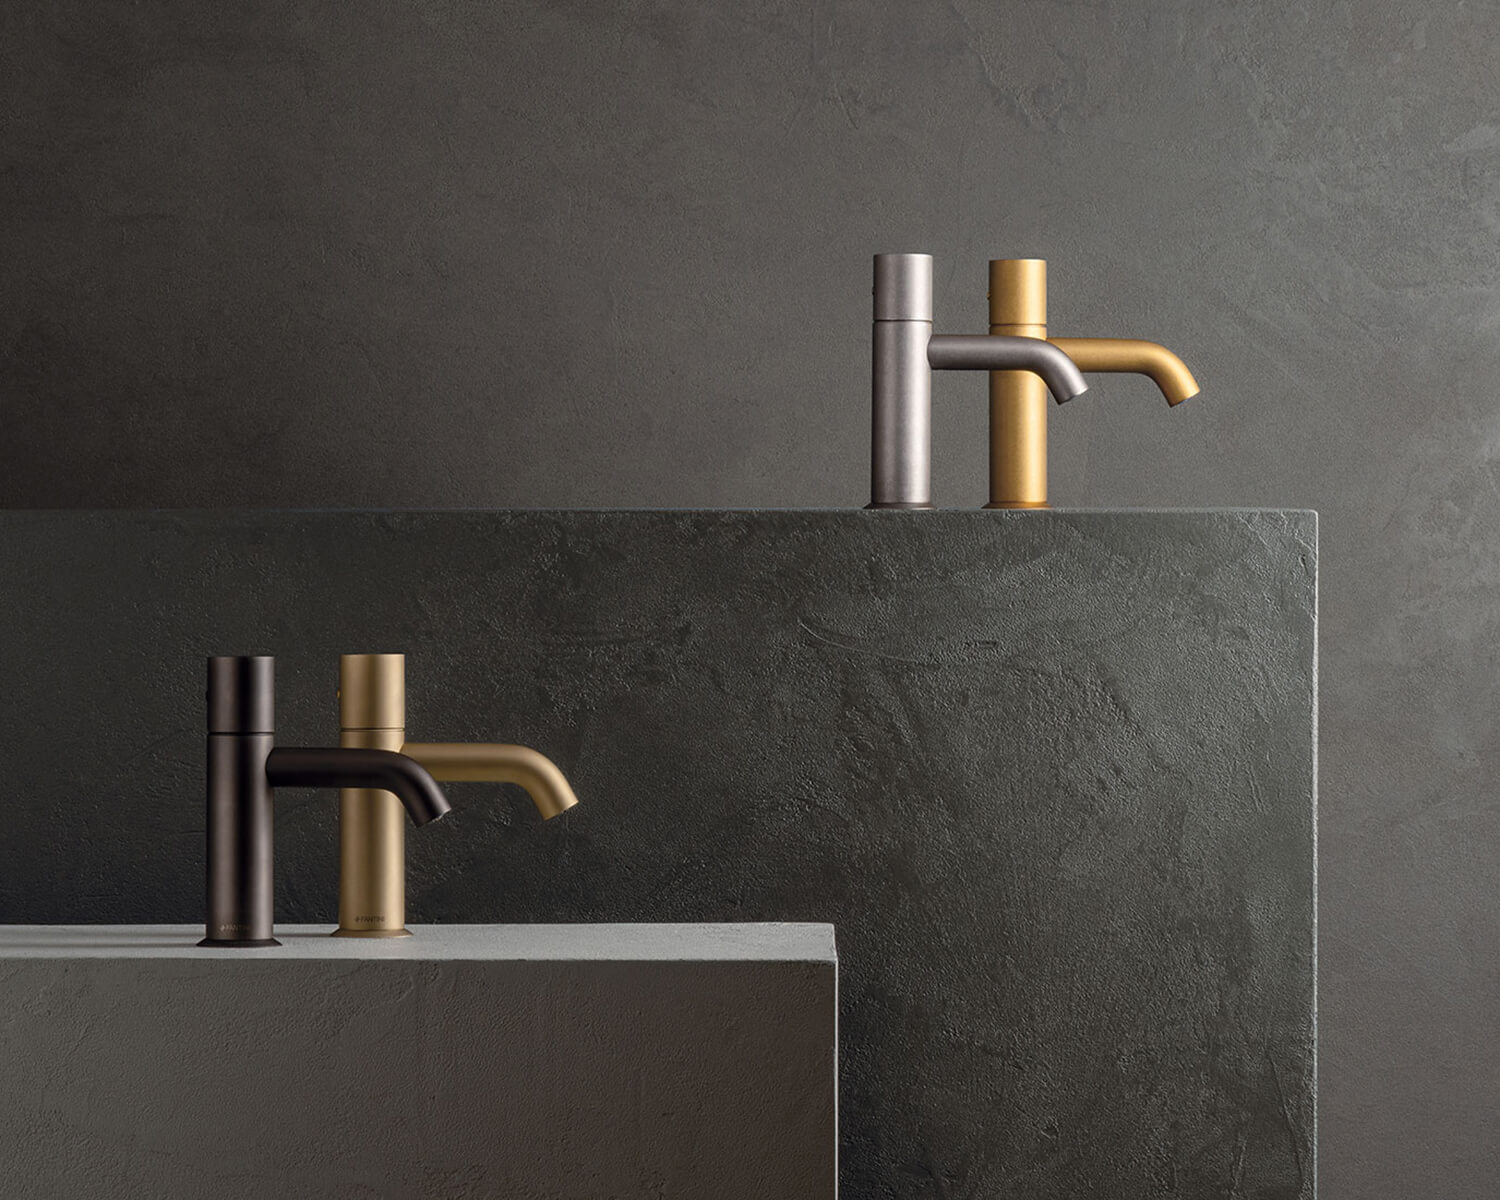 The Nostromo Collection in various PVD finishes: Matte Gun Metal, Matte British Gold, Raw Metal, Pure Brass, arranged on 2 grey stone plinths